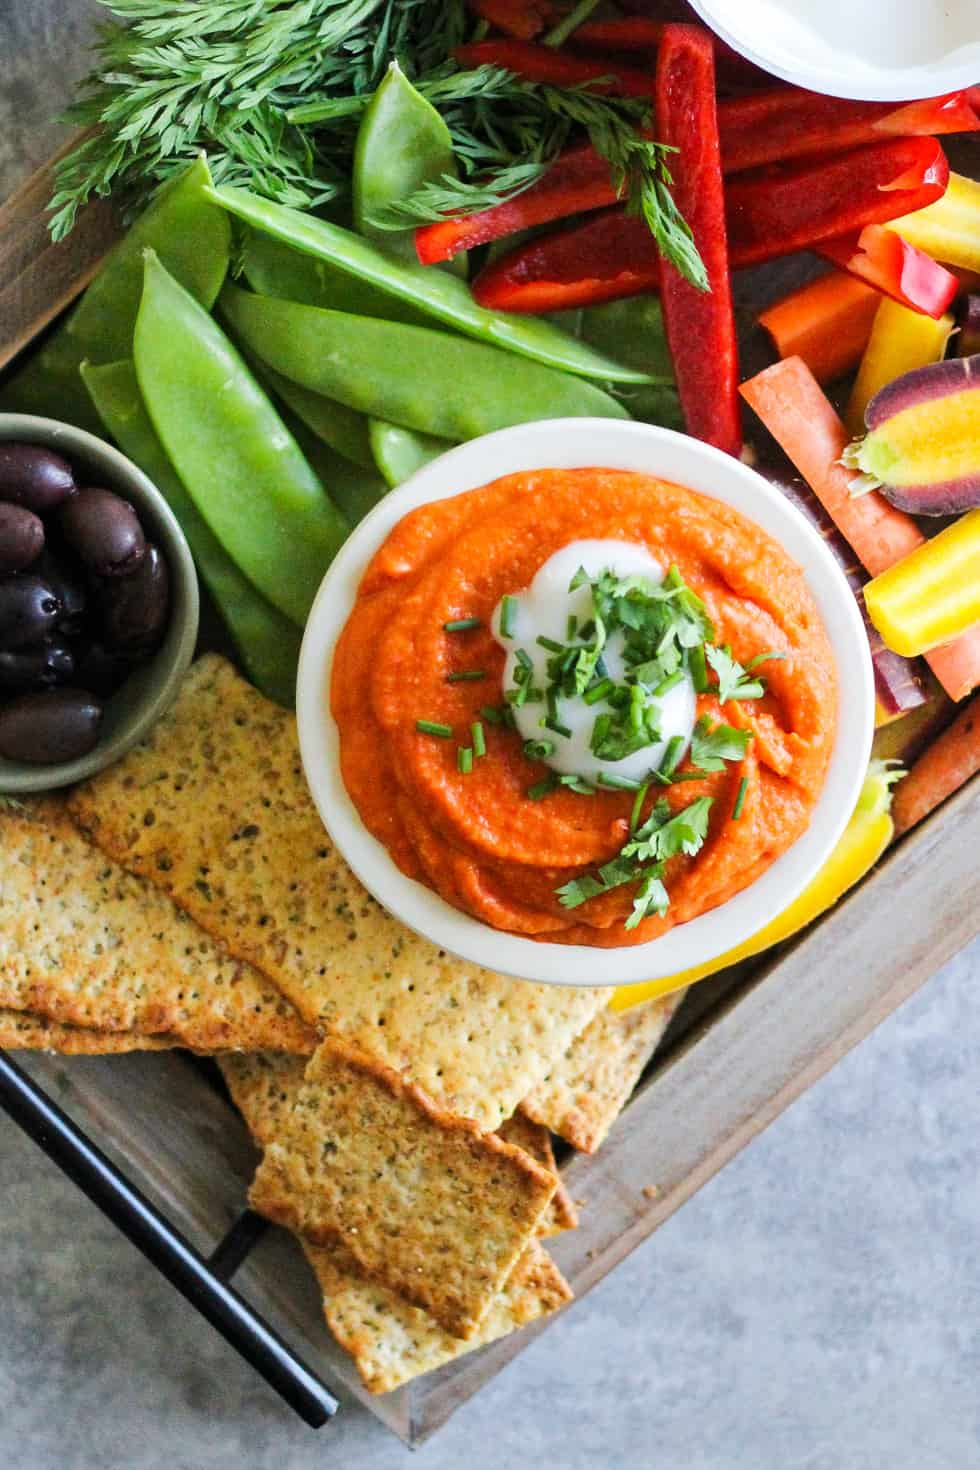 Party board with orange dip and vegetables.